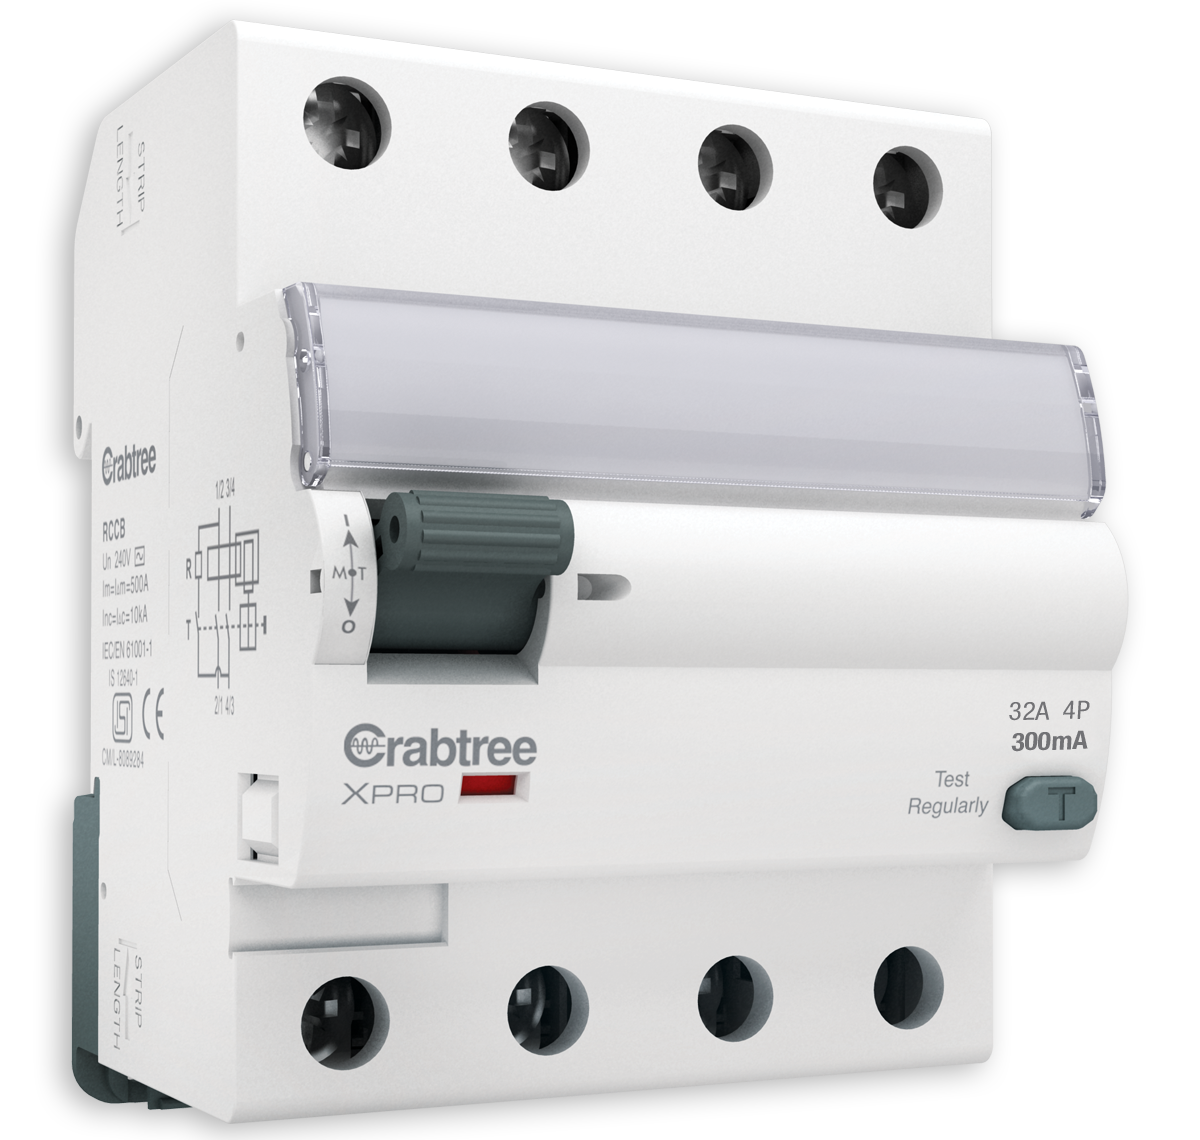 Crabtree - RCCB  A  Type FP 300mA-32A